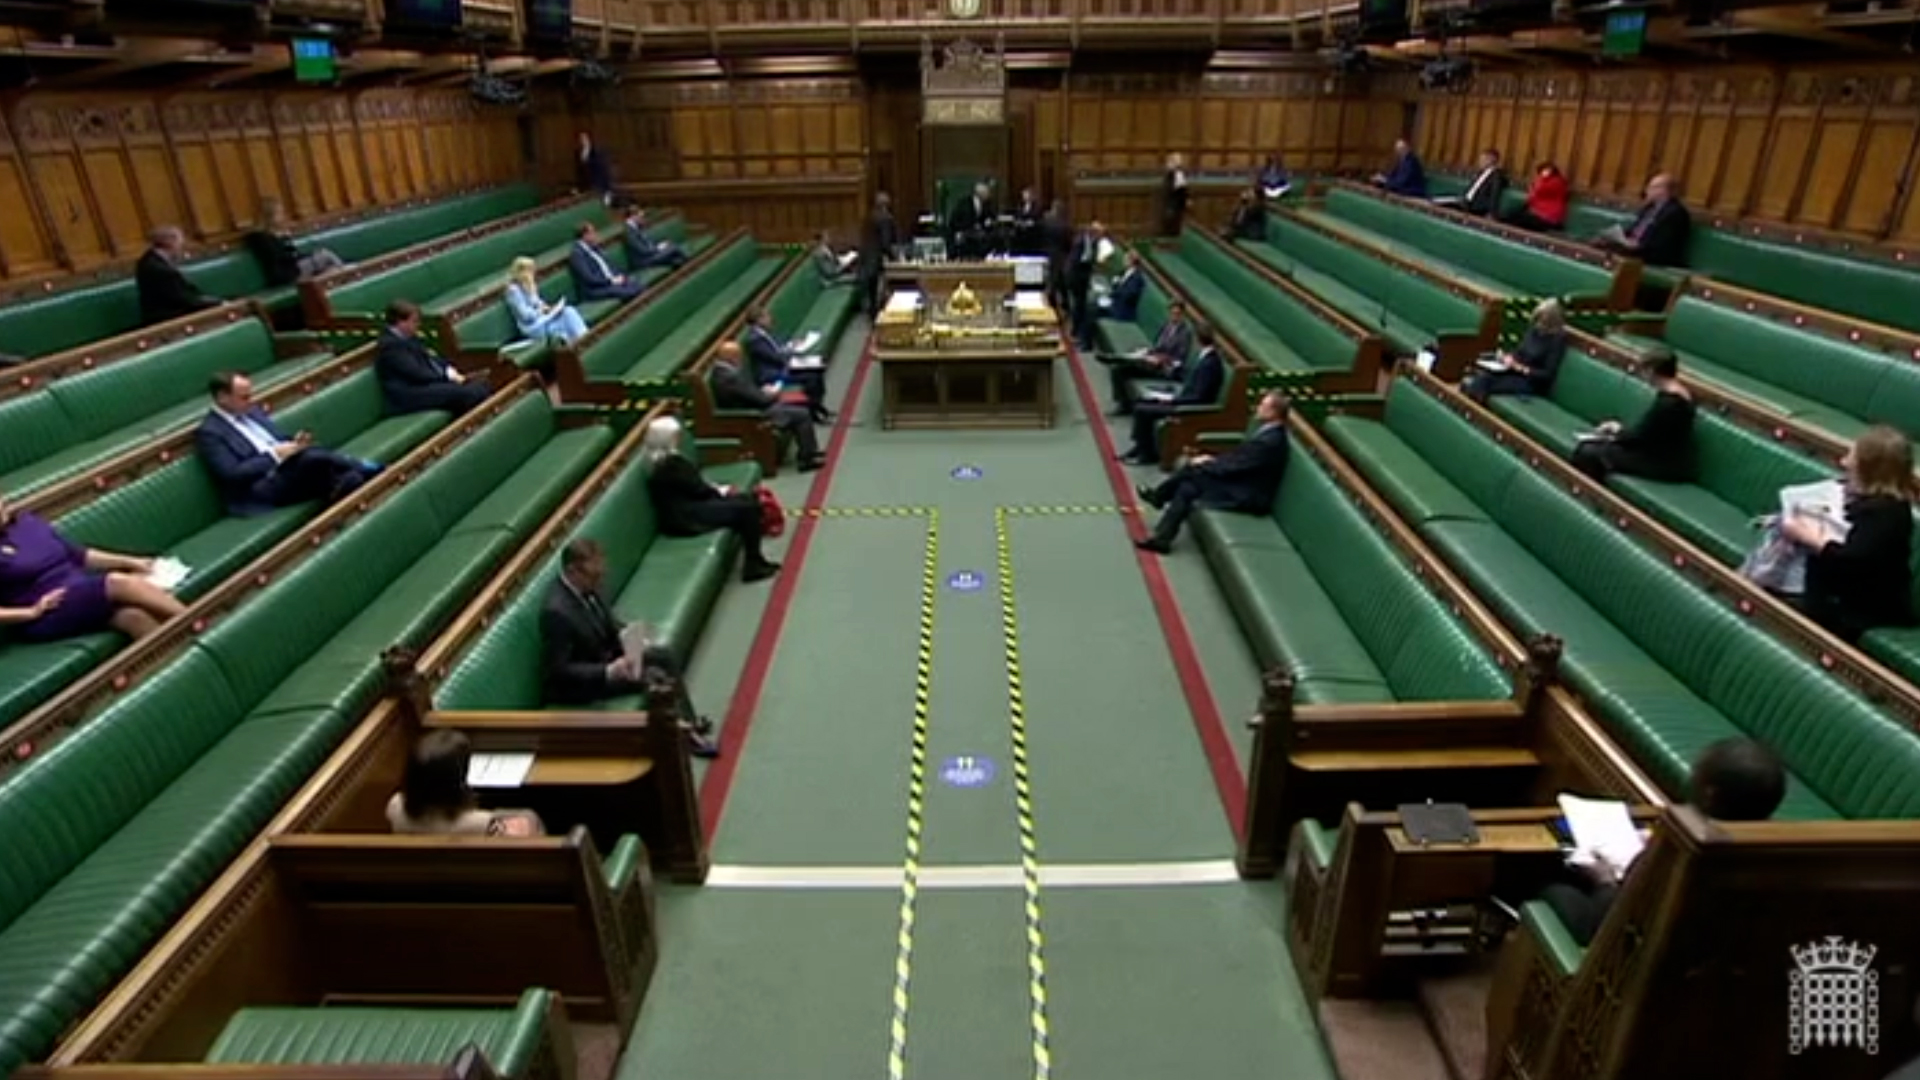 MPs sitting socially distanced in the House of Commons